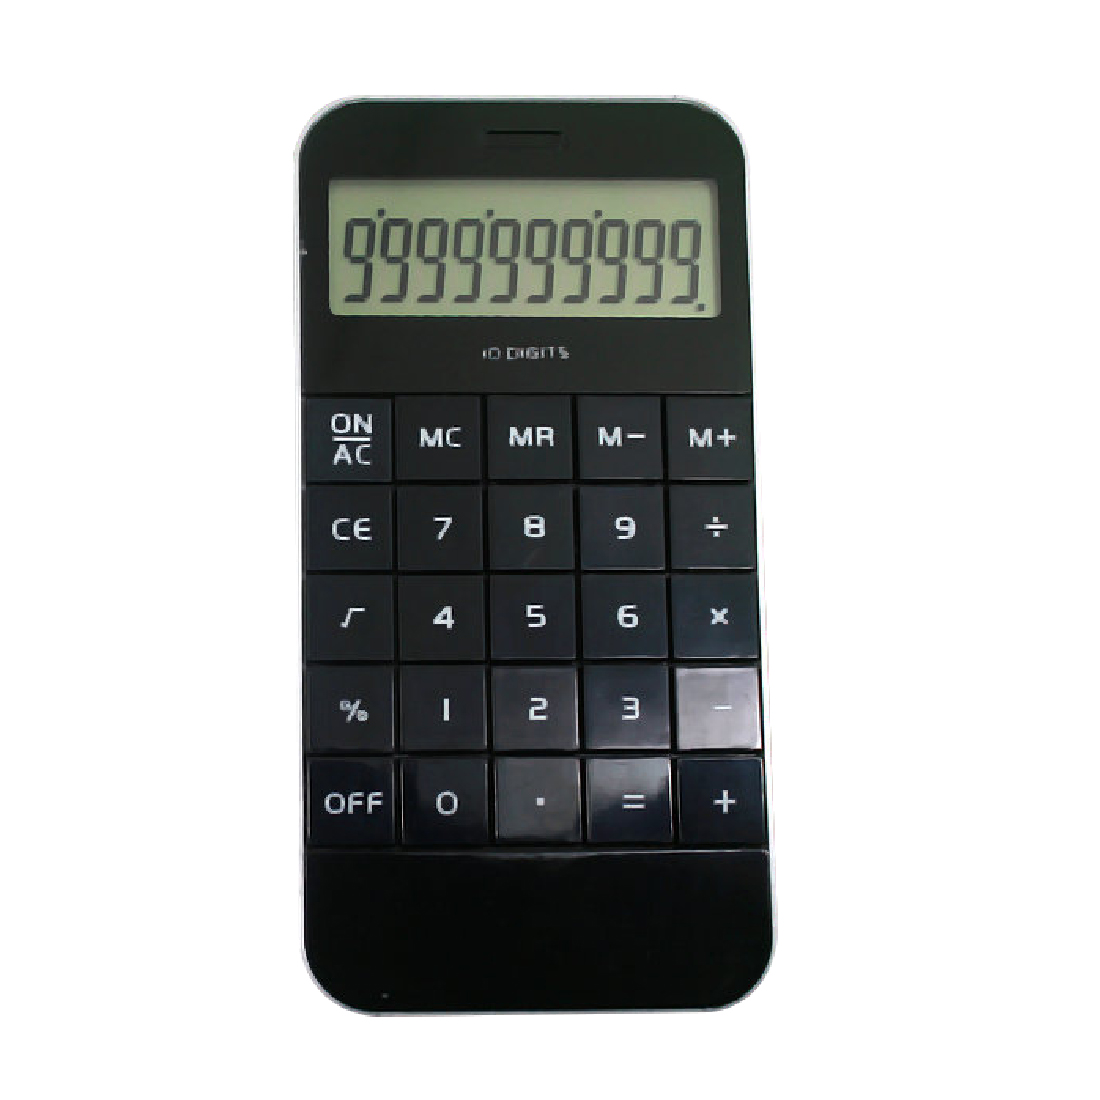 The Cheapest Price Portable Home Calculator Pocket Electronic Calculating Office Schoolcalculator Big Clearance Sale Calculators